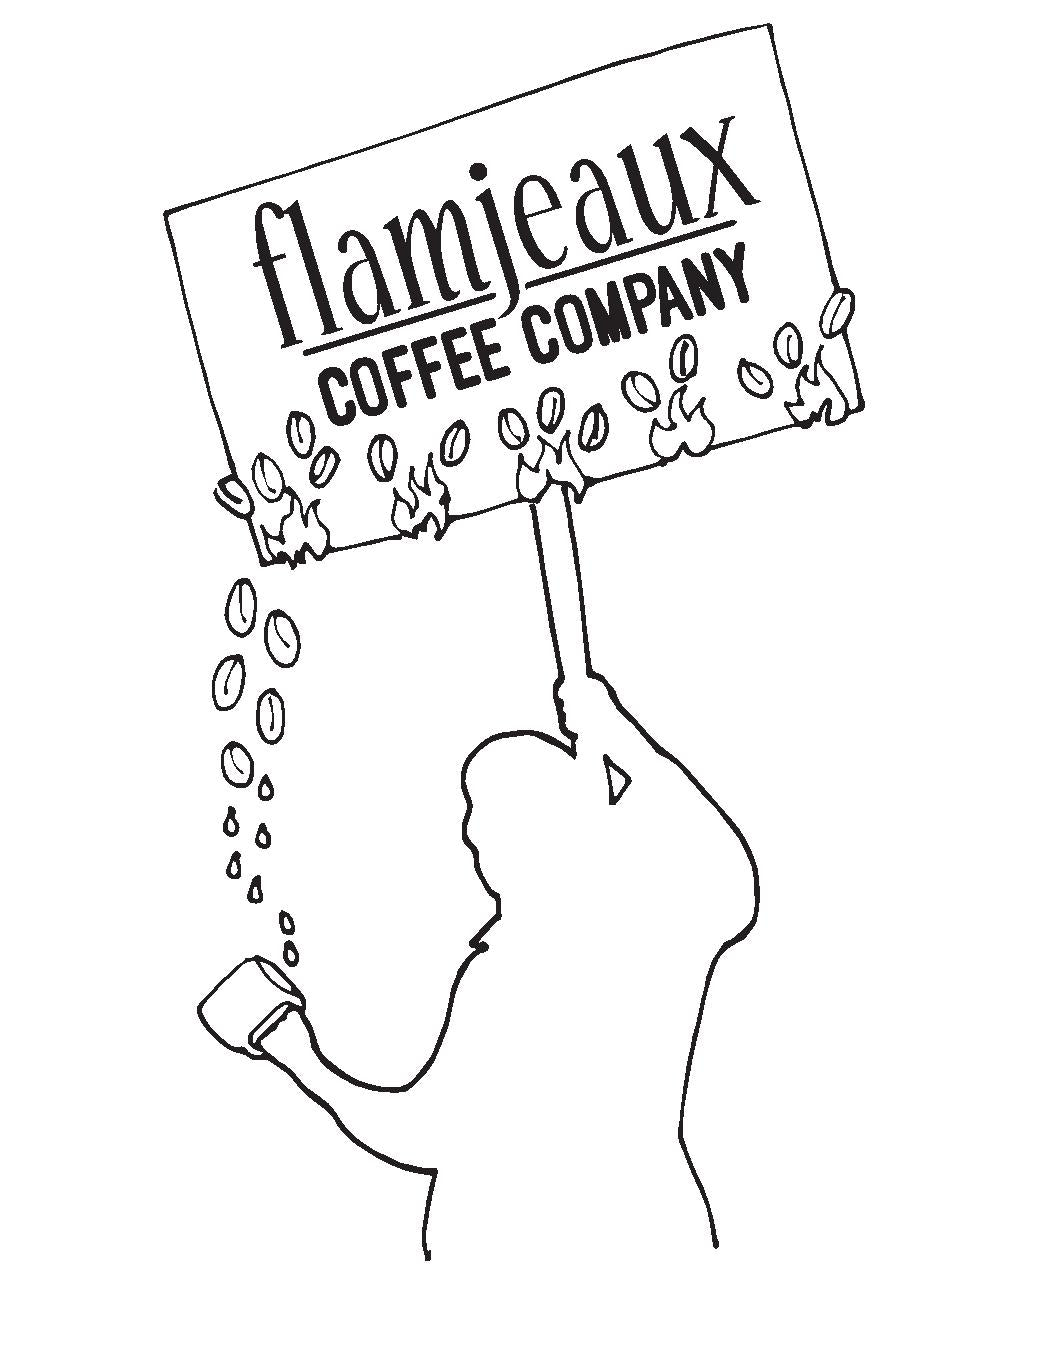 Flamjeaux Coffee